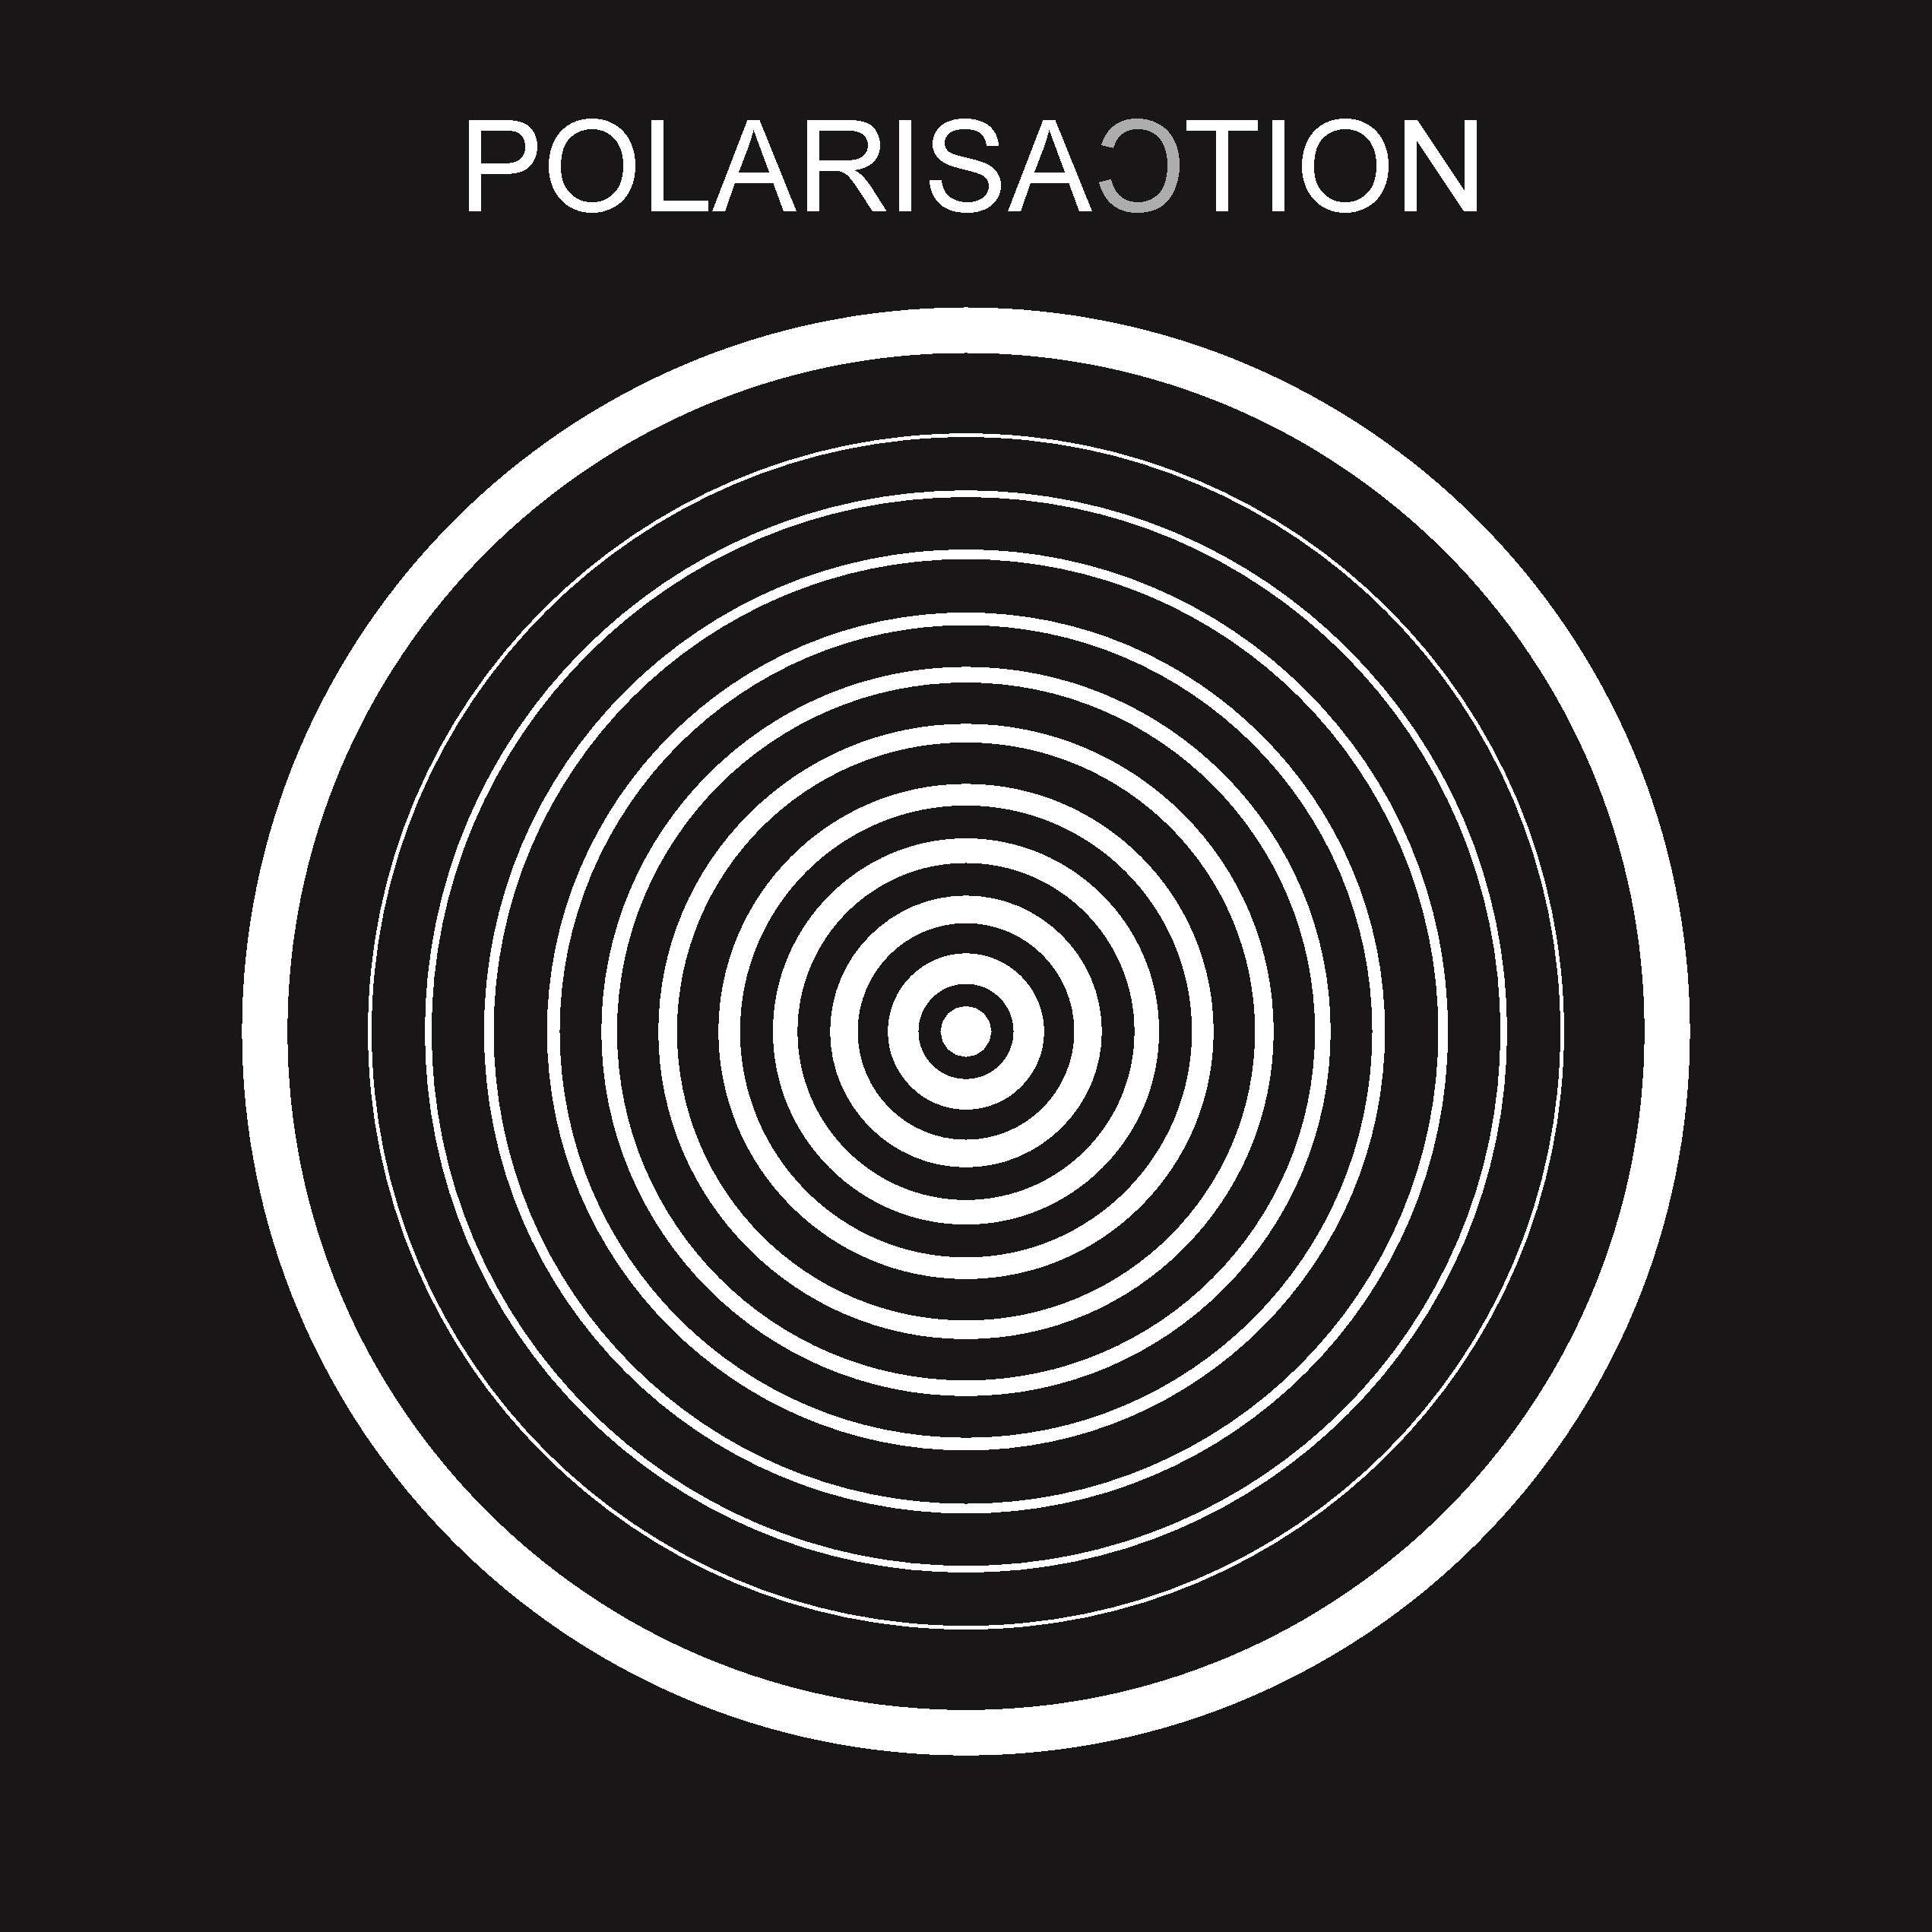 POLARISAcTION grafika